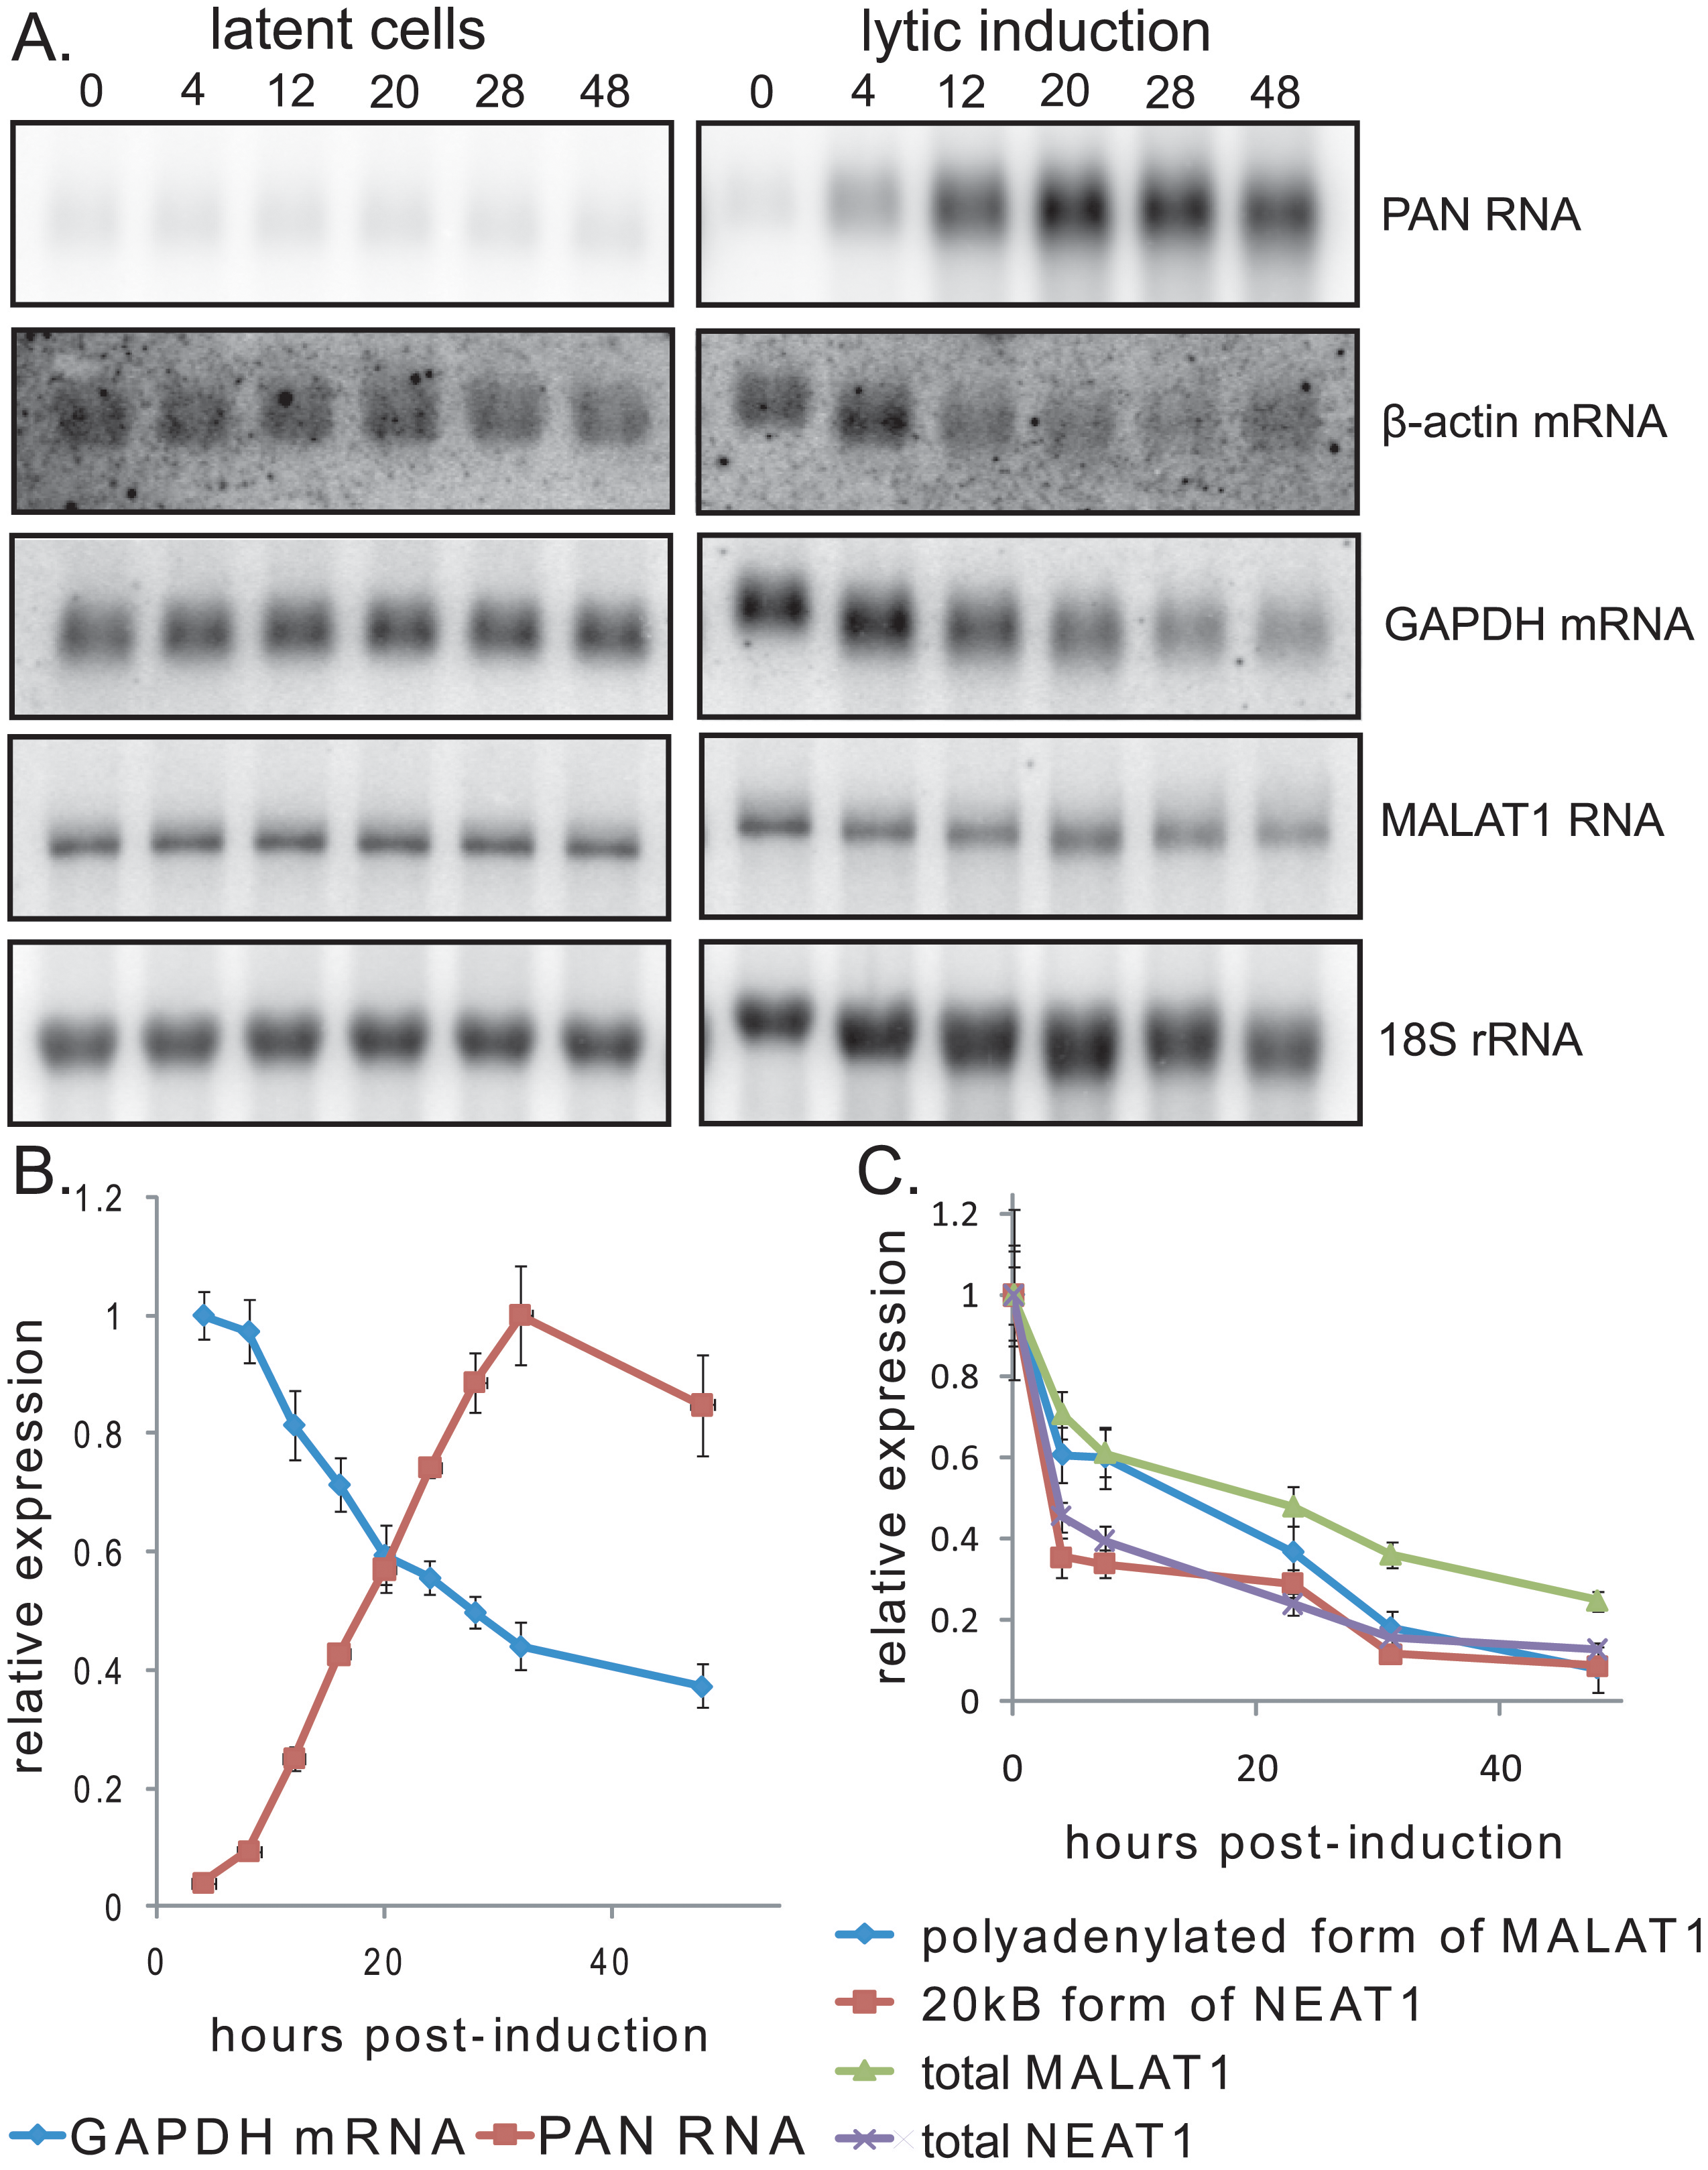 Expression of PAN RNA is coincident with the host shutoff effect.